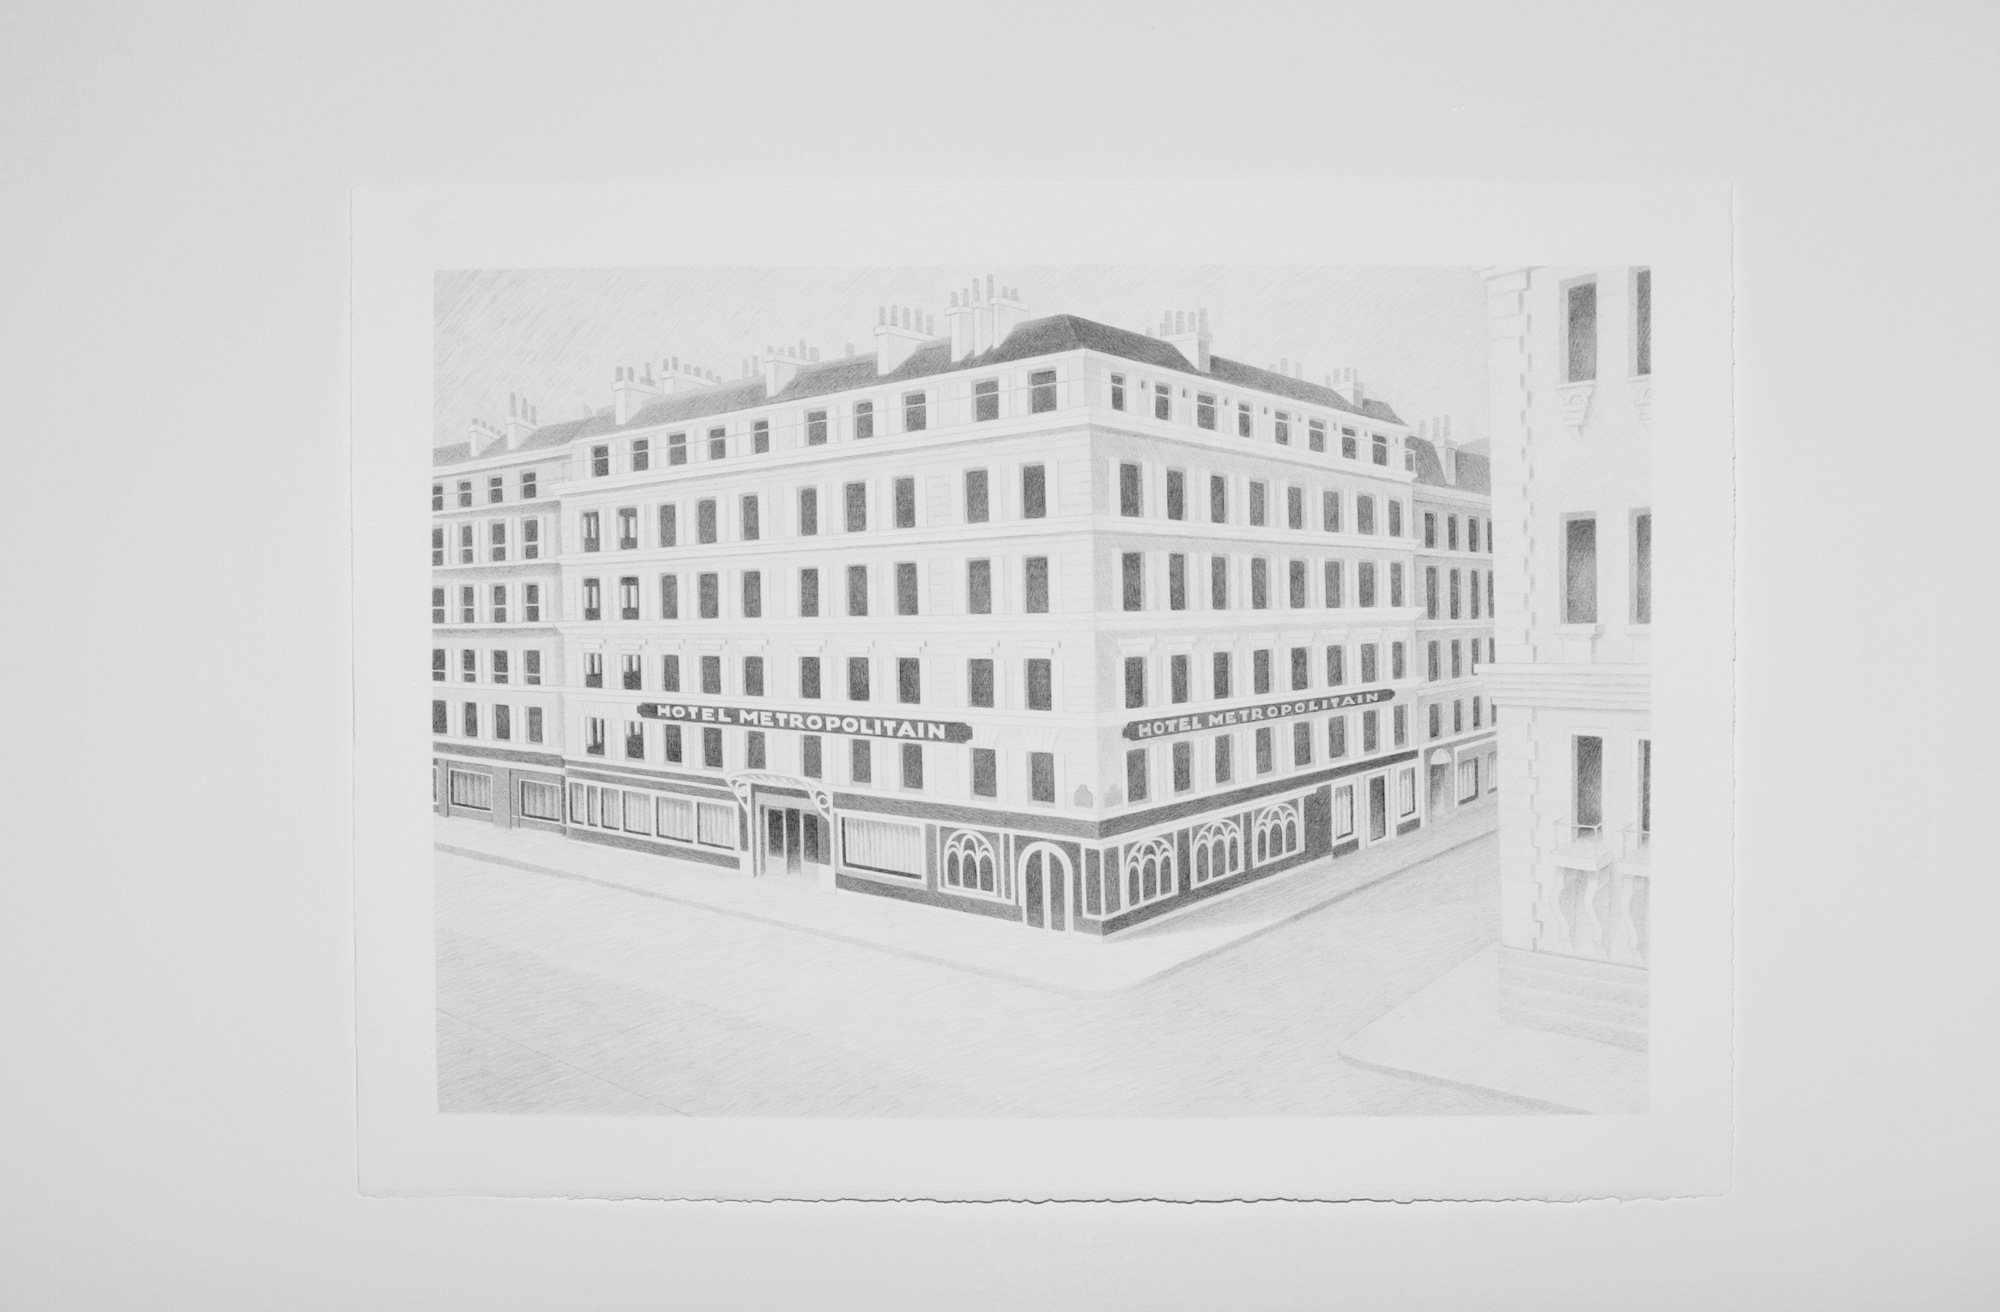 Metropolitan Hotel 2015 - 2016 Colour pencil on paper 47 x 68 cm ea.